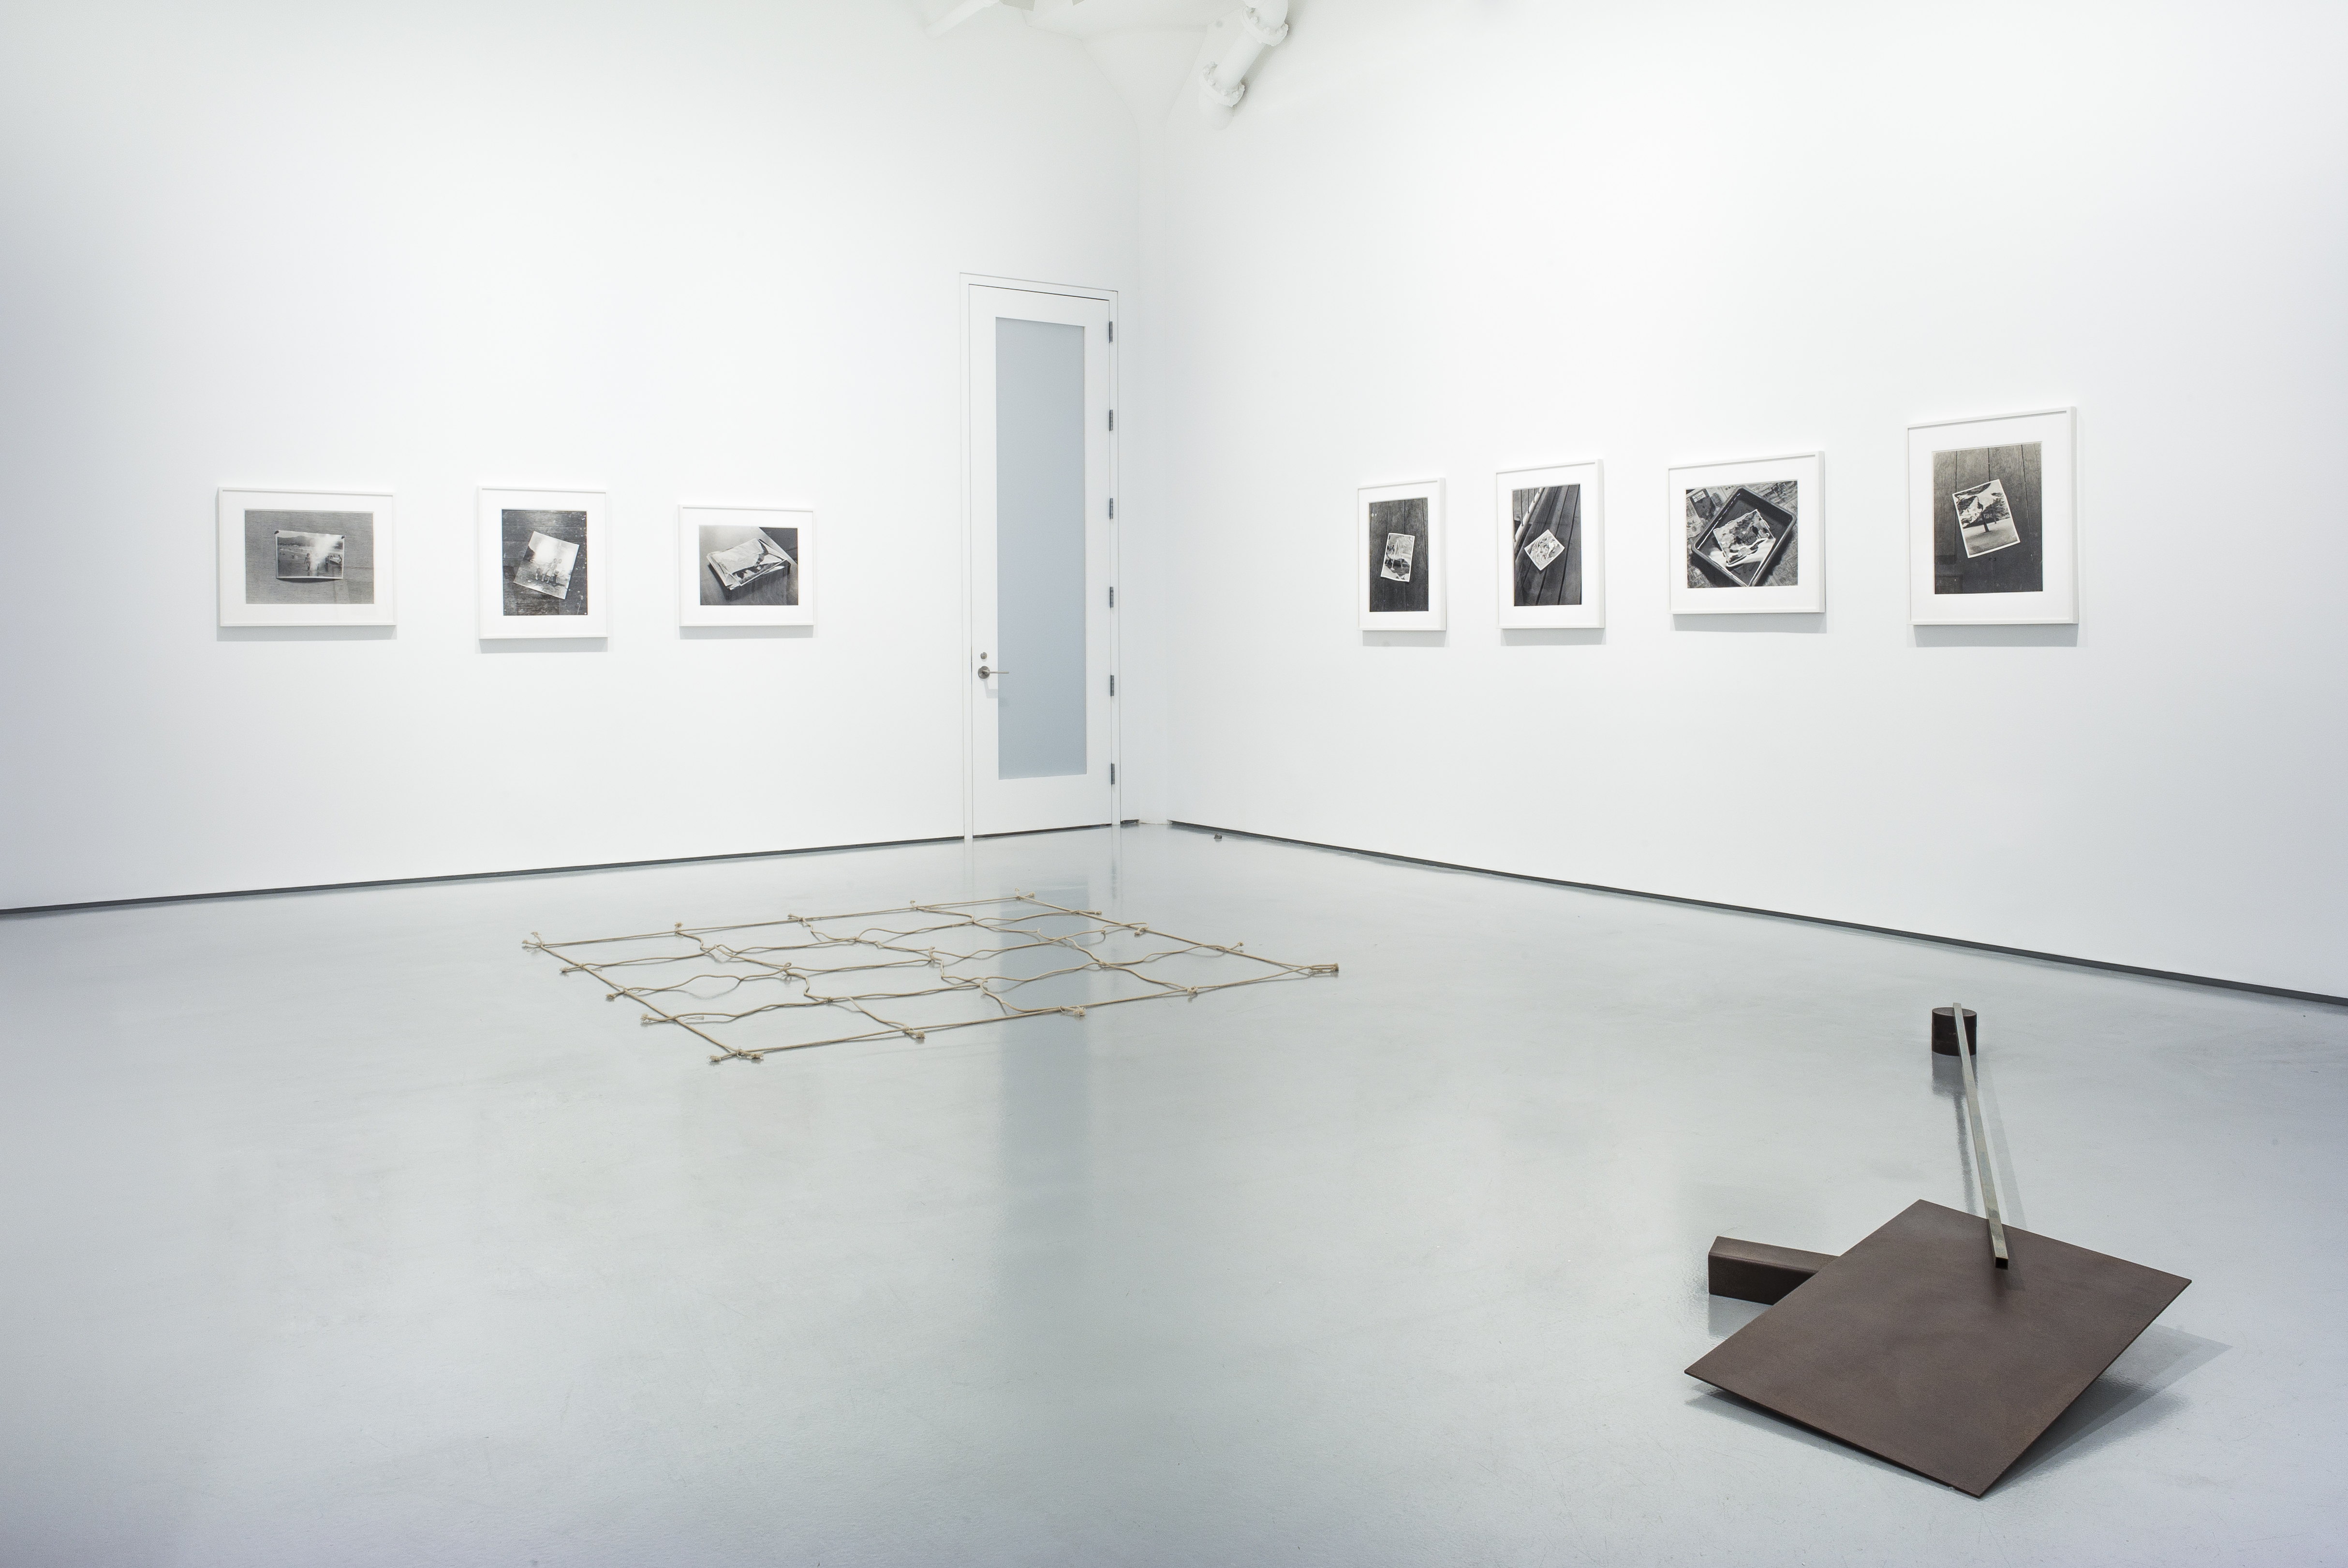 Photograph 3 from Jiro Takamatsu: From Shadow to Compound exhibition.